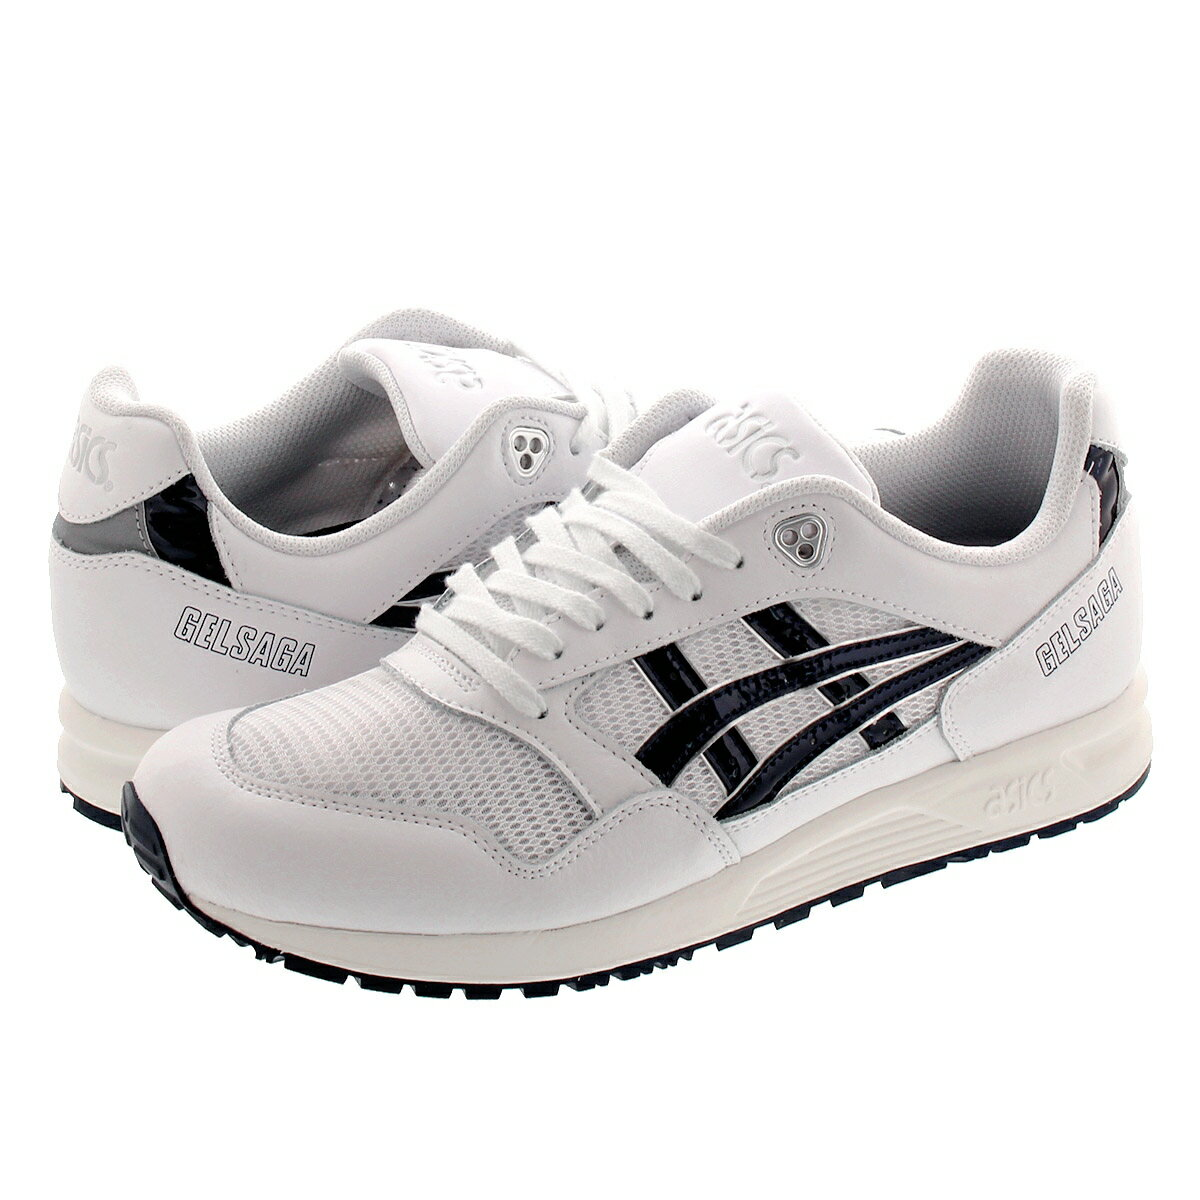 メンズ靴, スニーカー ASICS Tiger GEL SAGA WHITEMIDNIGHT 1191a231-101